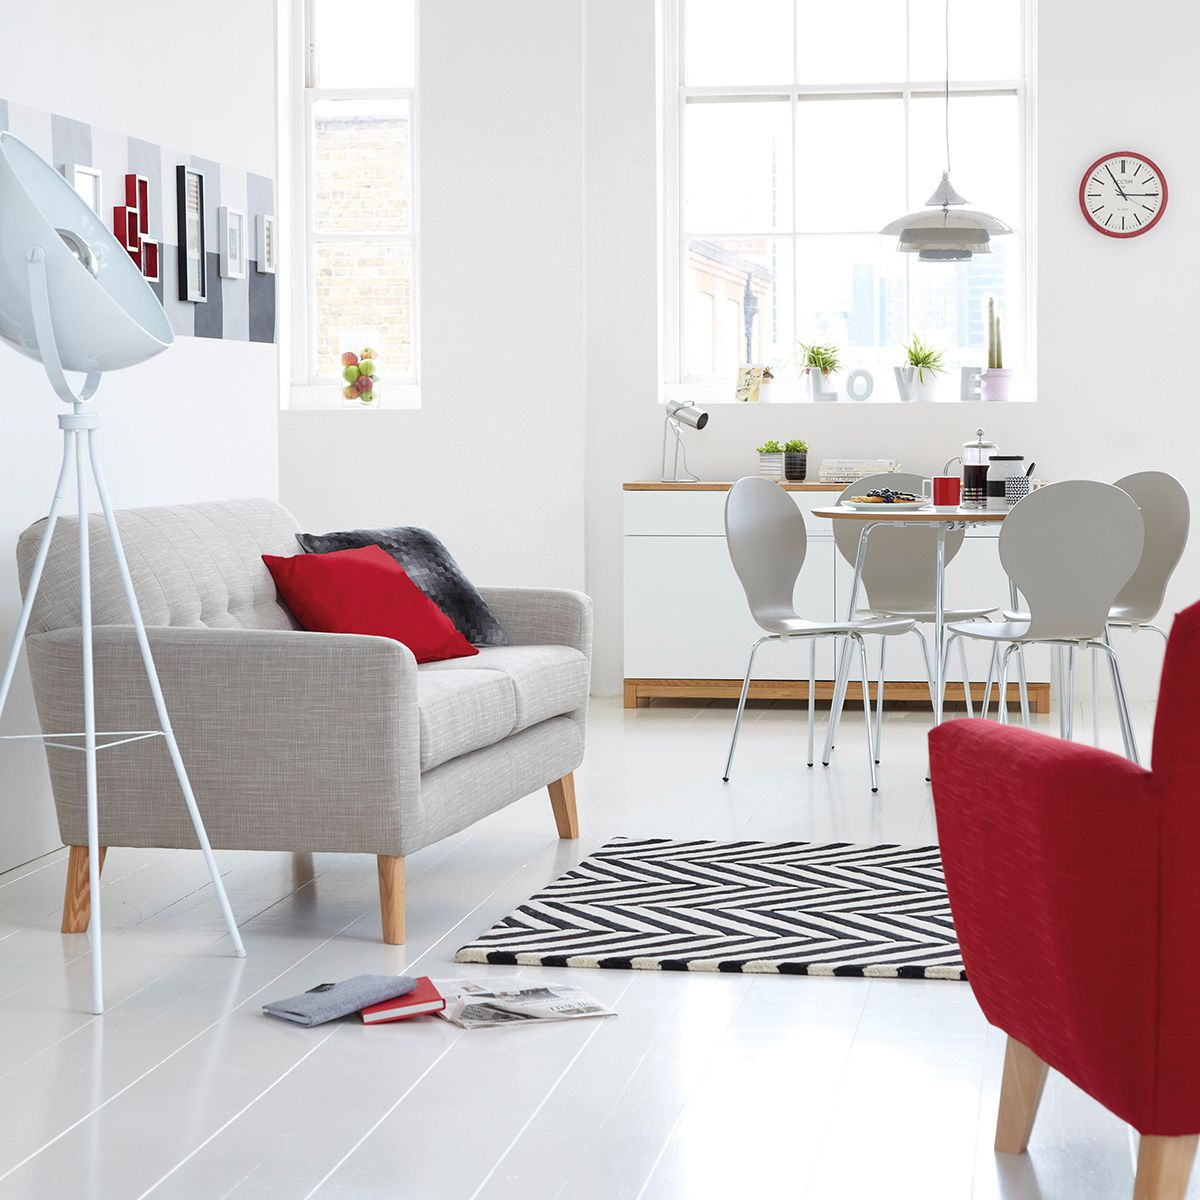 Oriental Accents, Statement Wallpaper And Vintage Home Accessories    Thereu0027s Rather A Few Decorating Ideas To Be Had From Tesco Directu0027s  Autumn/Winter 2014 ...